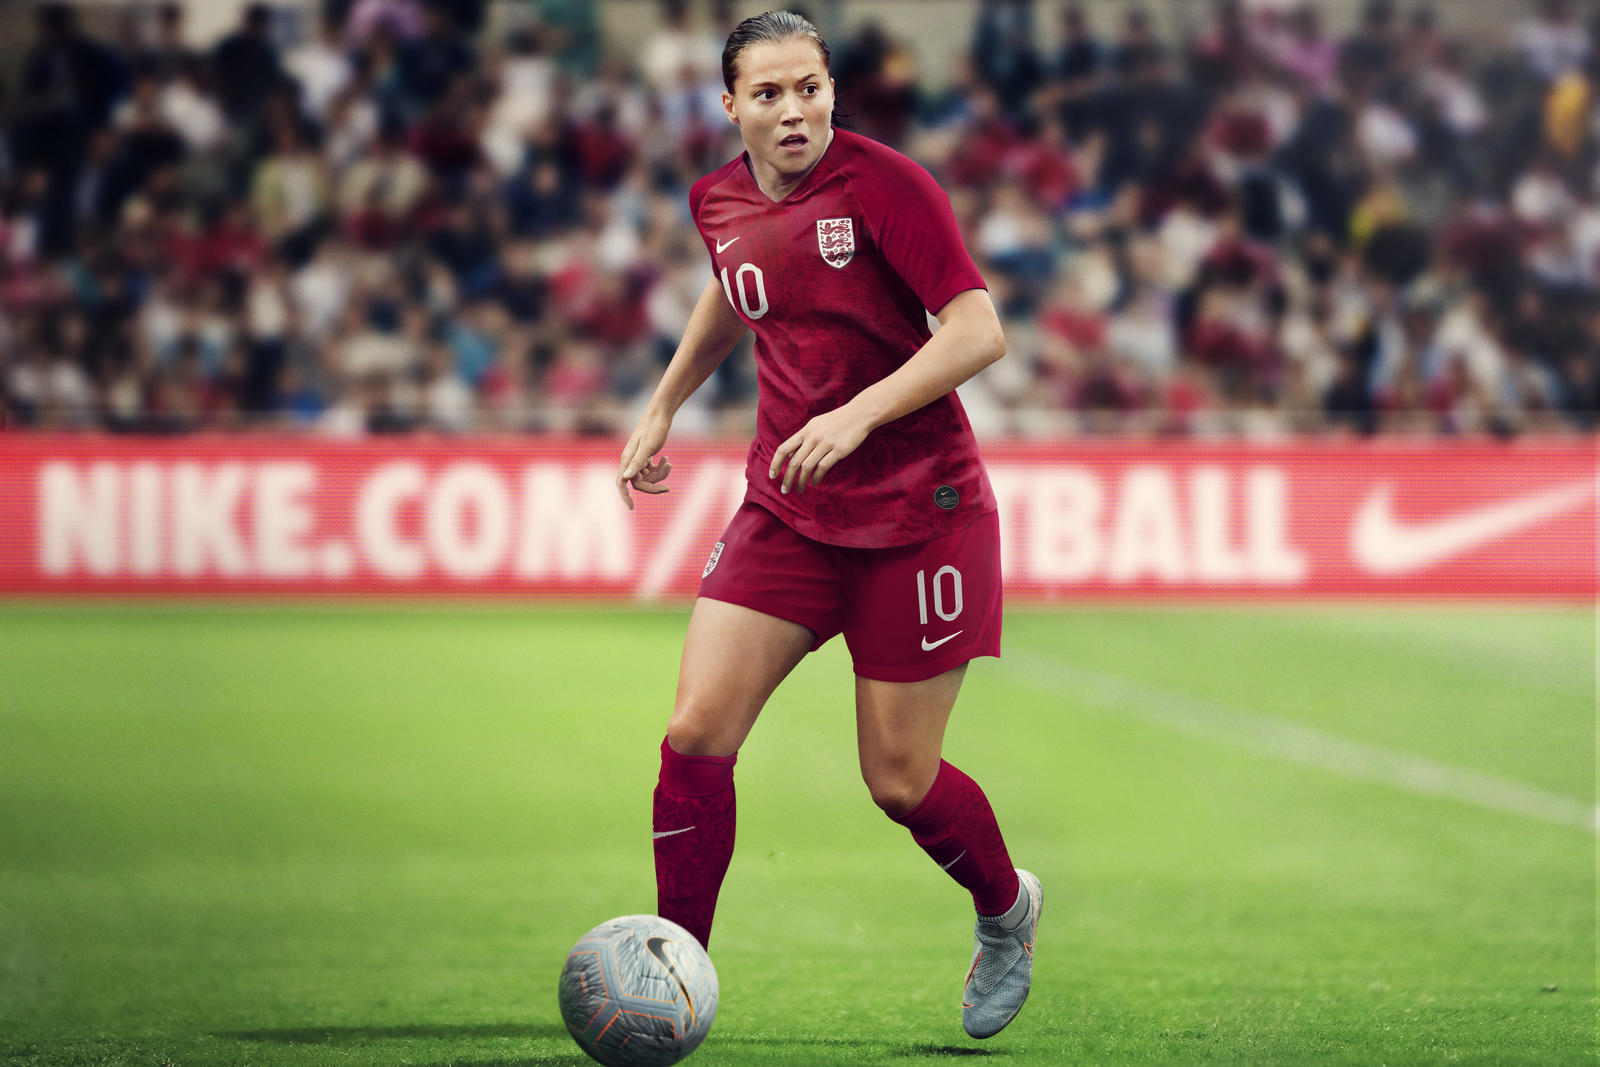 ba985fbc9d1 Nike Unveil the First-Ever Bespoke England Women's World Cup Kits